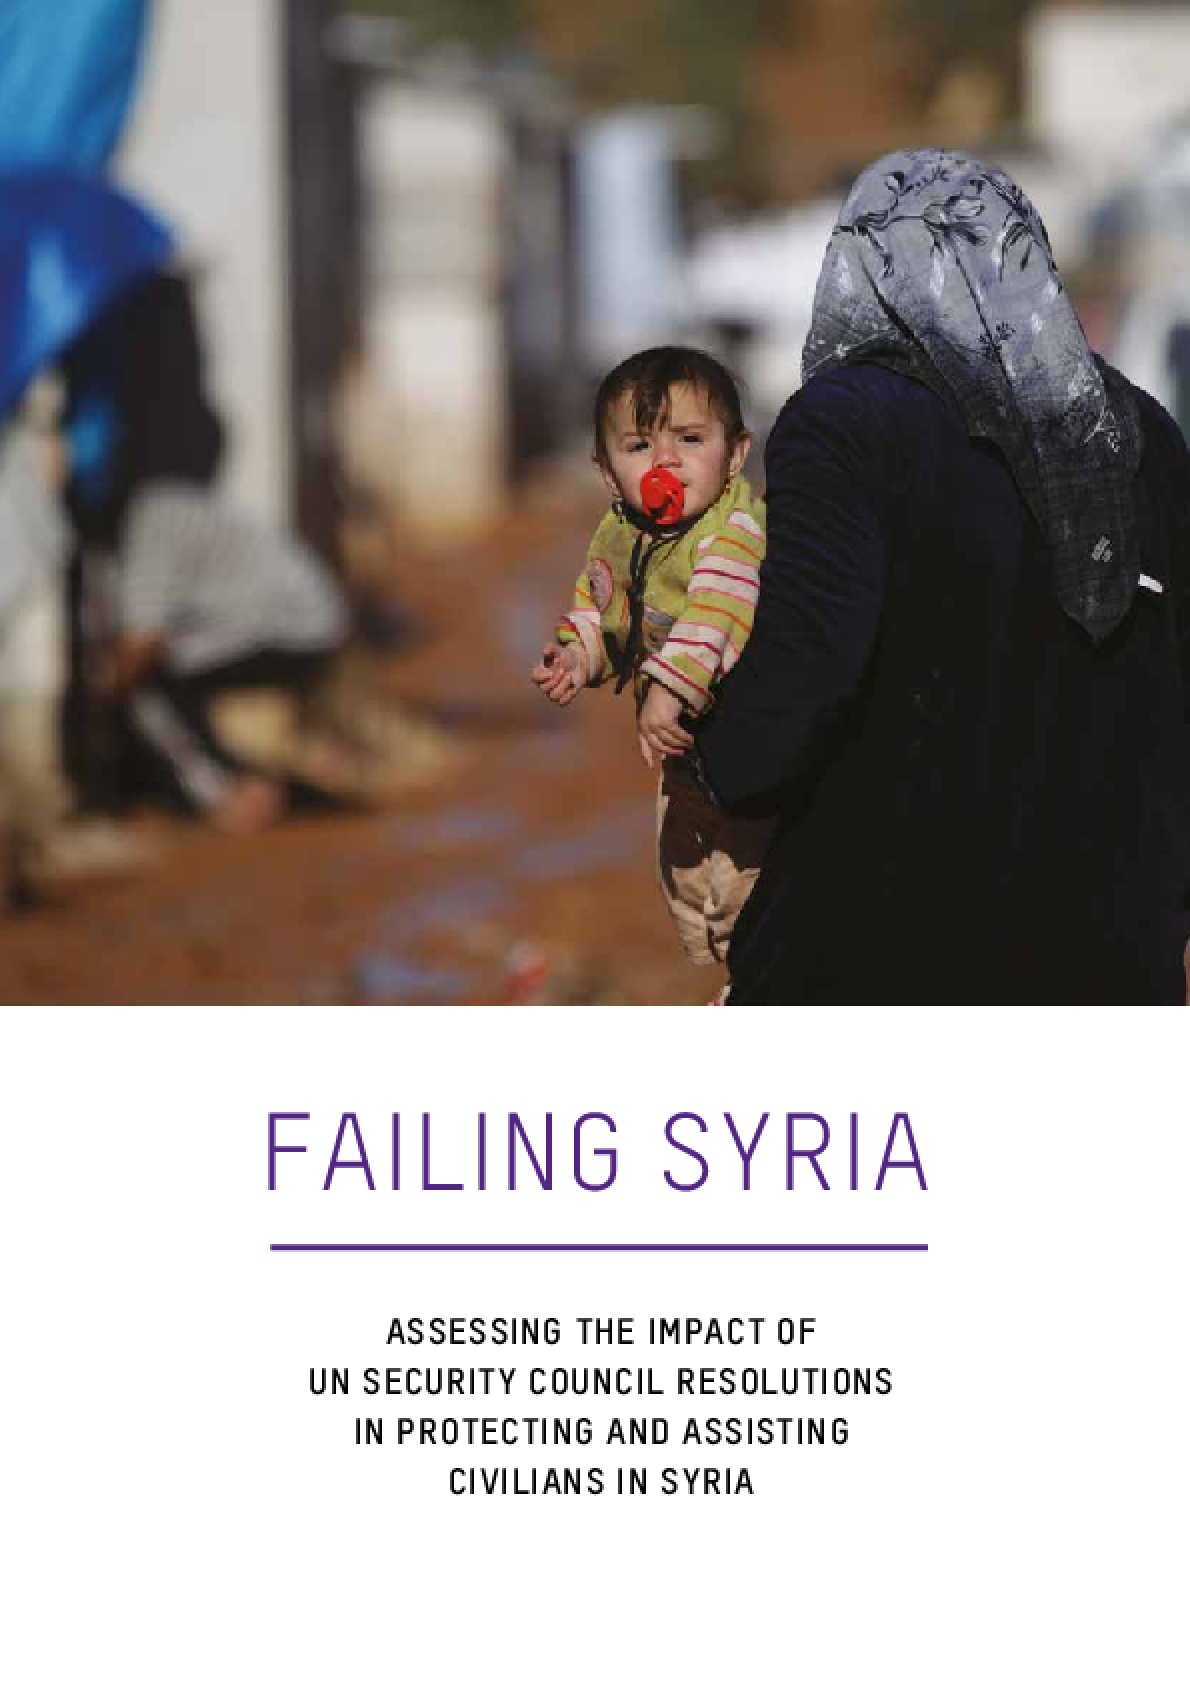 Failing Syria: Assessing the impact of UN Security Council Resolutions in protecting and assisting civilians in Syria